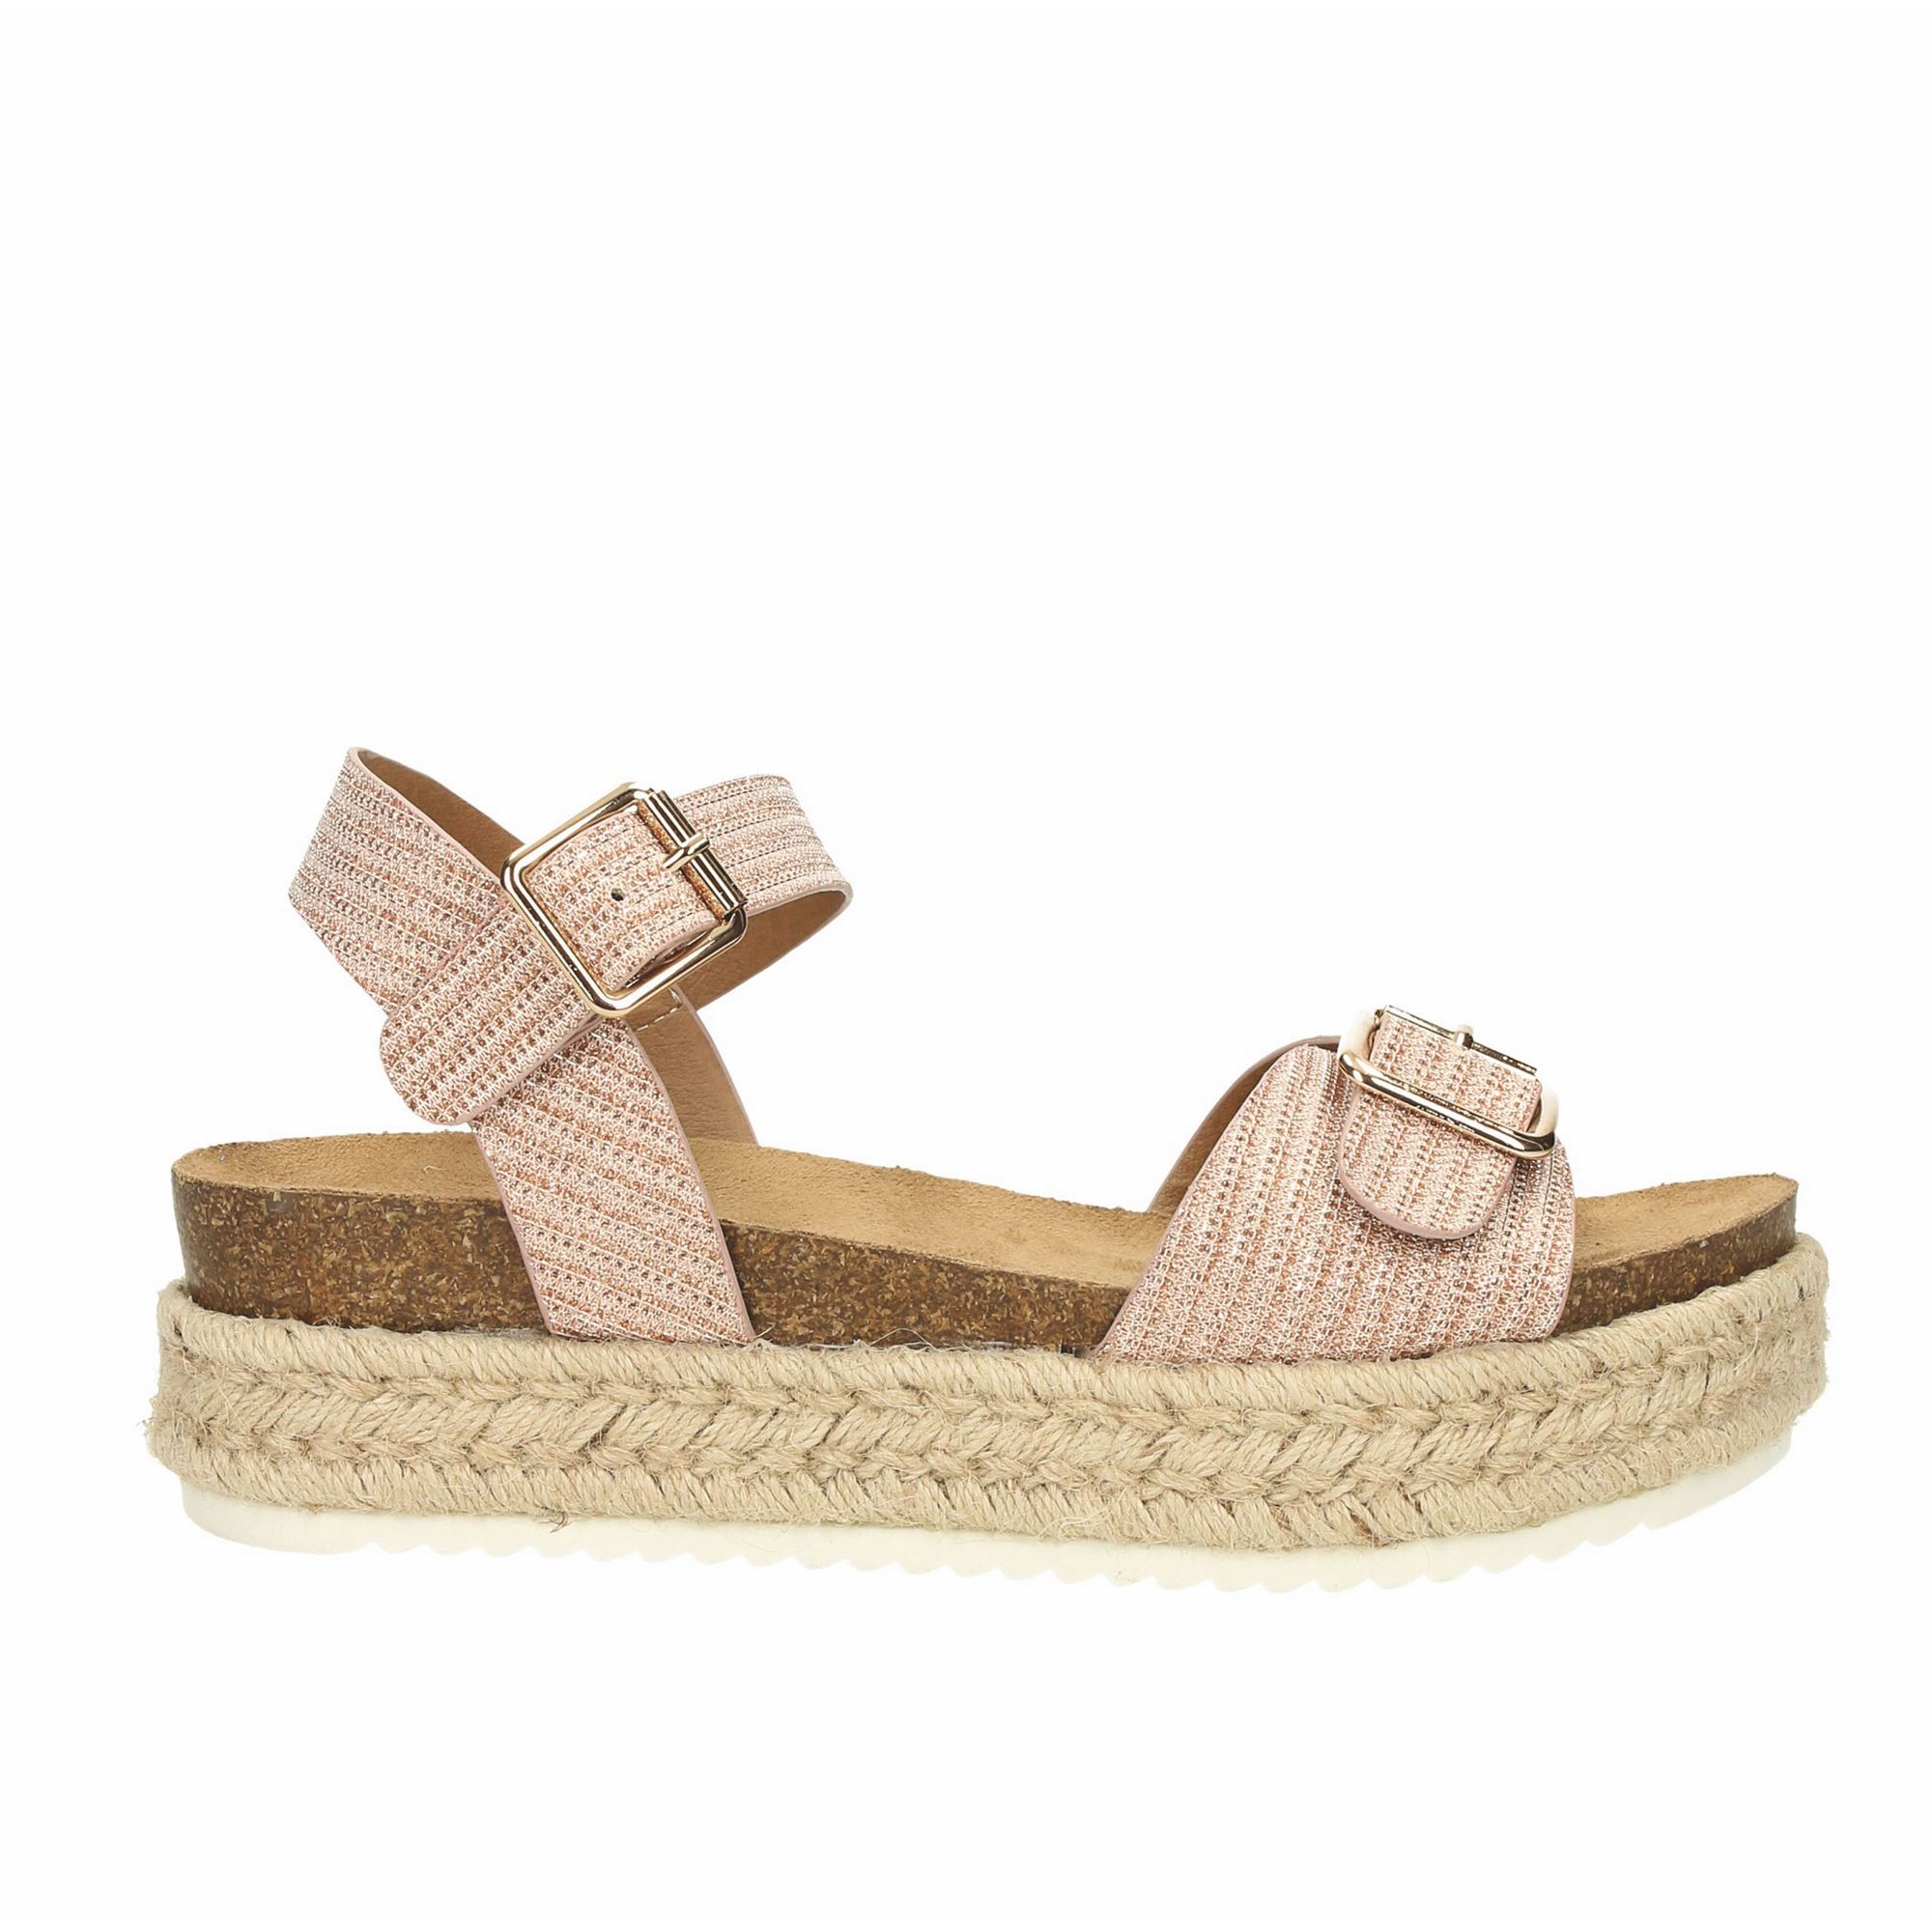 Tata Italia Shoes Woman Sandali Rose/gold DS700-12